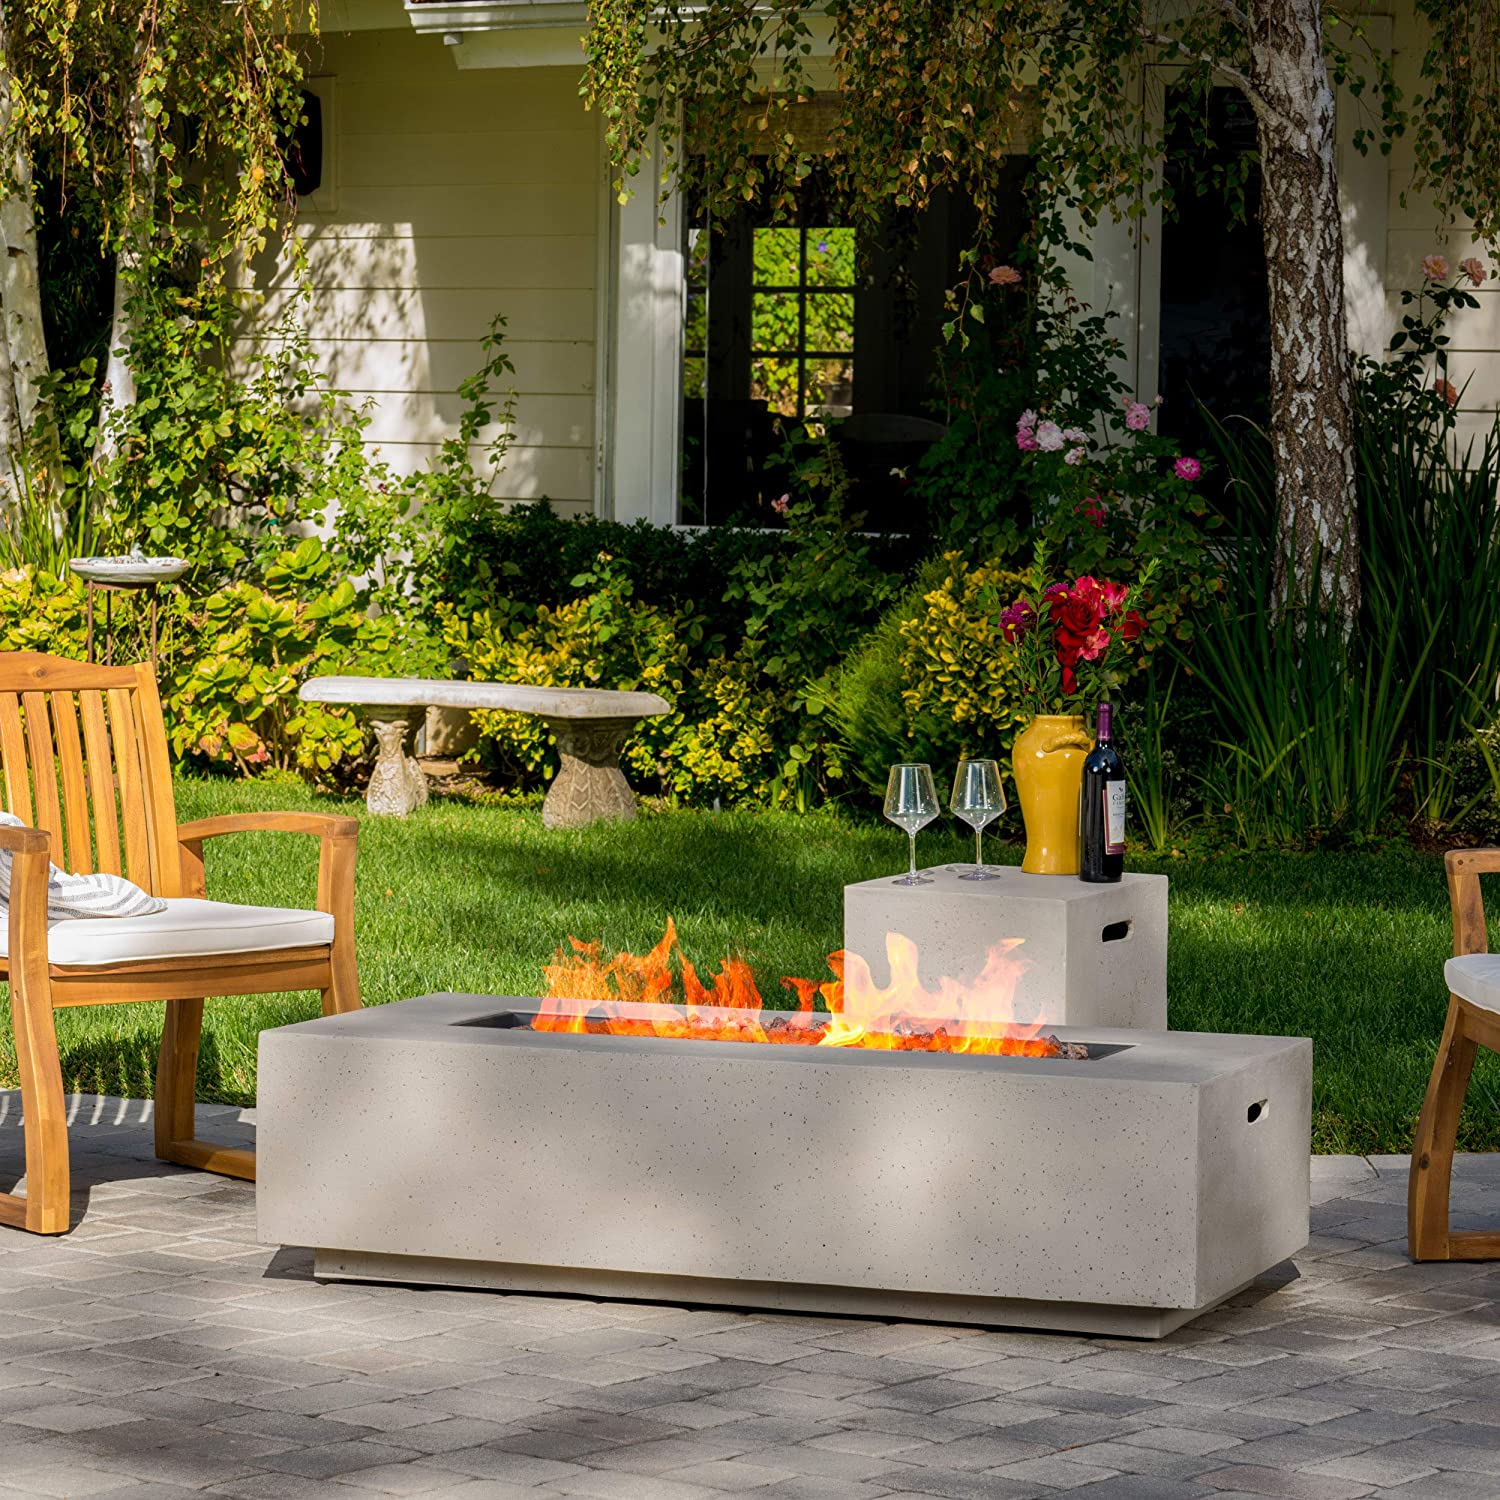 Christopher Knight Home 296666 Jaxon Outdoor Fire Table with Lava Rocks Tank Holder Light Grey , White